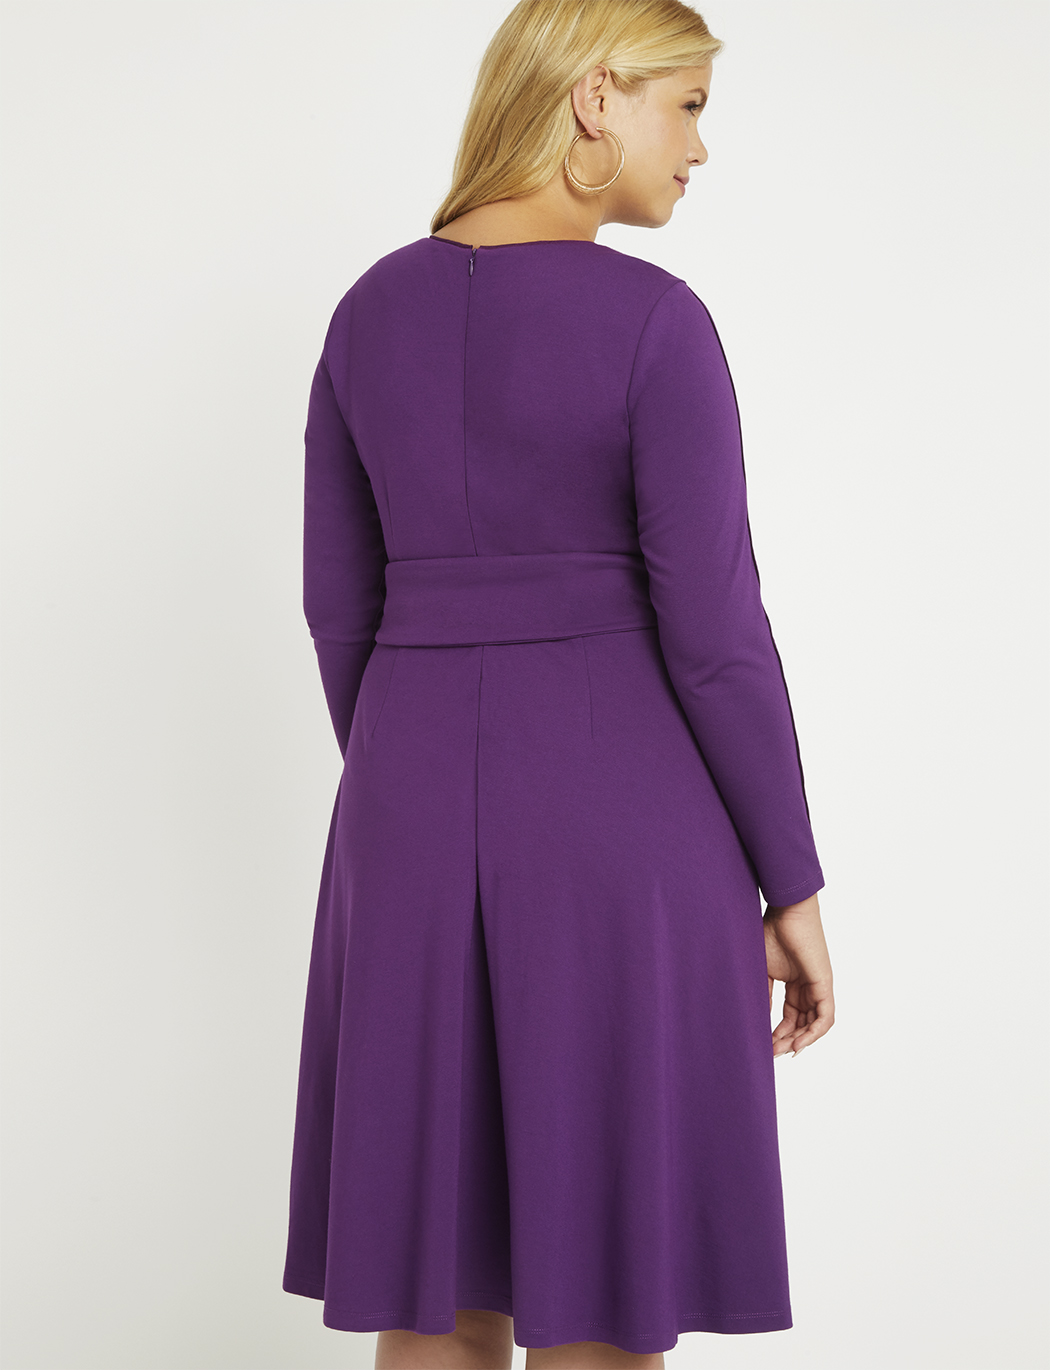 Long Sleeve Fit and Flare Dress